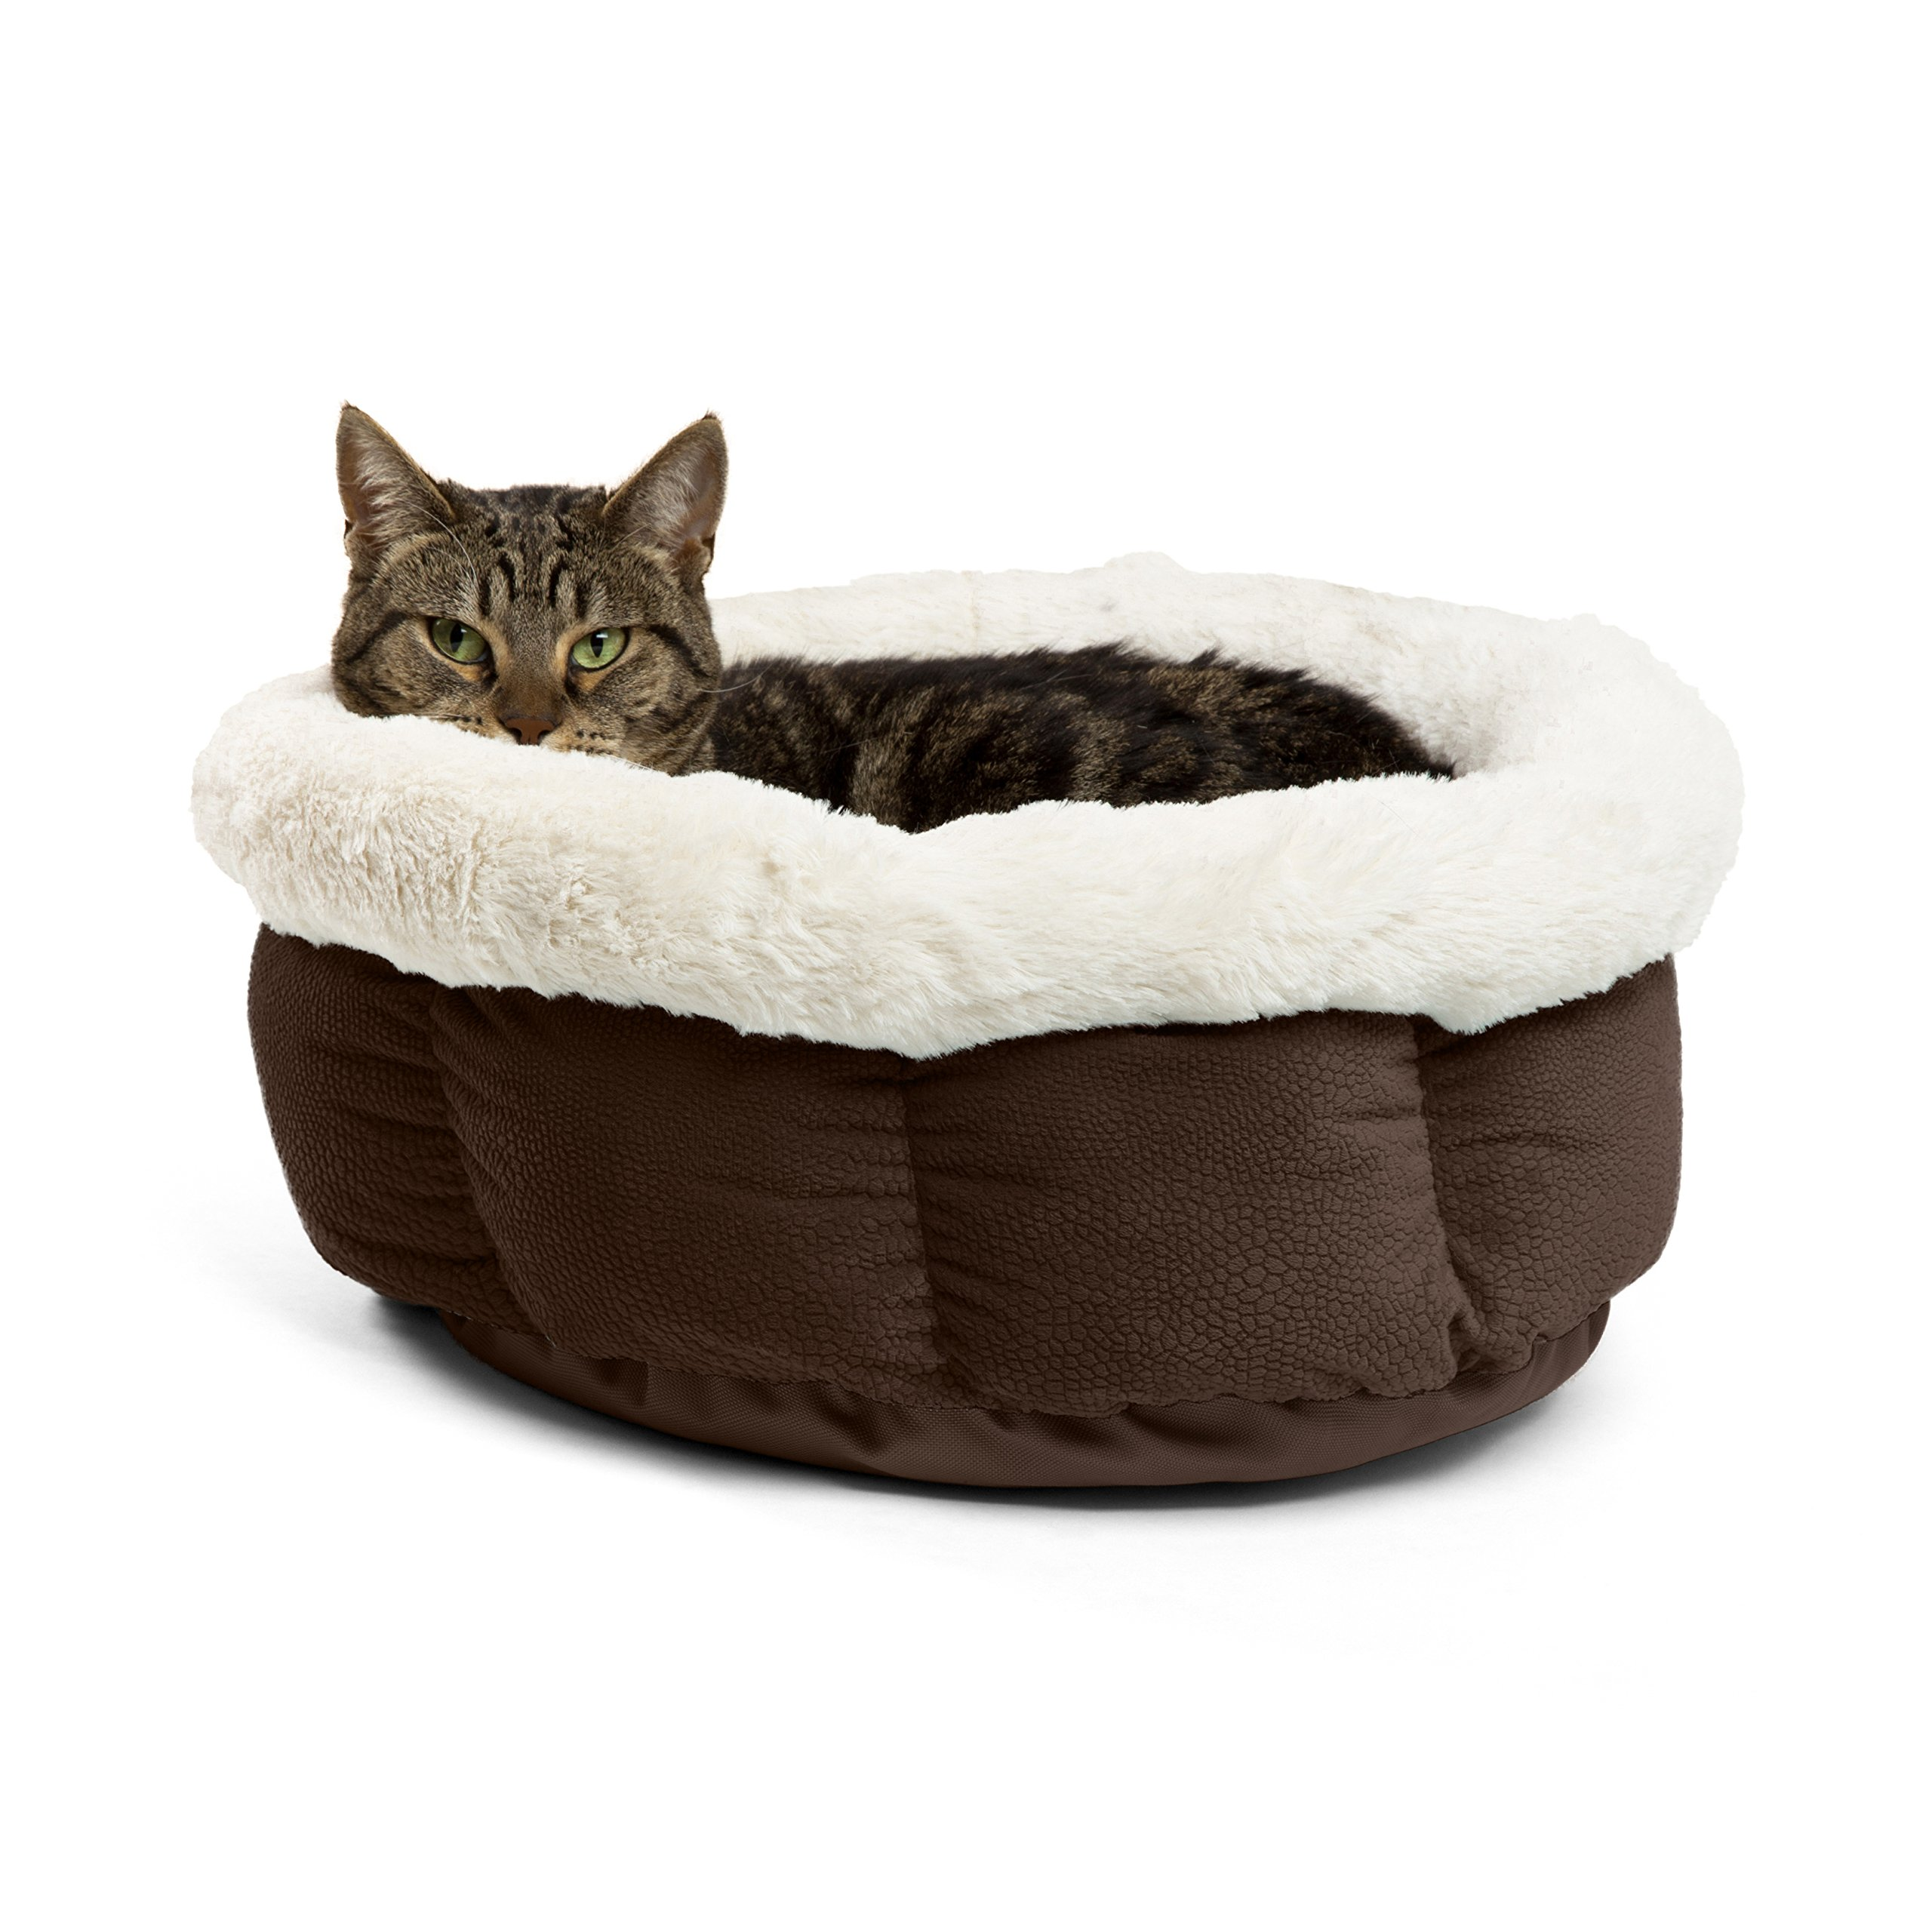 Best Friends by Sheri Small Cuddle Cup - Cozy, Comfortable Cat and Dog House Bed - High-Walls for Improved Sleep, Dark Chocolate by Best Friends by Sheri (Image #1)